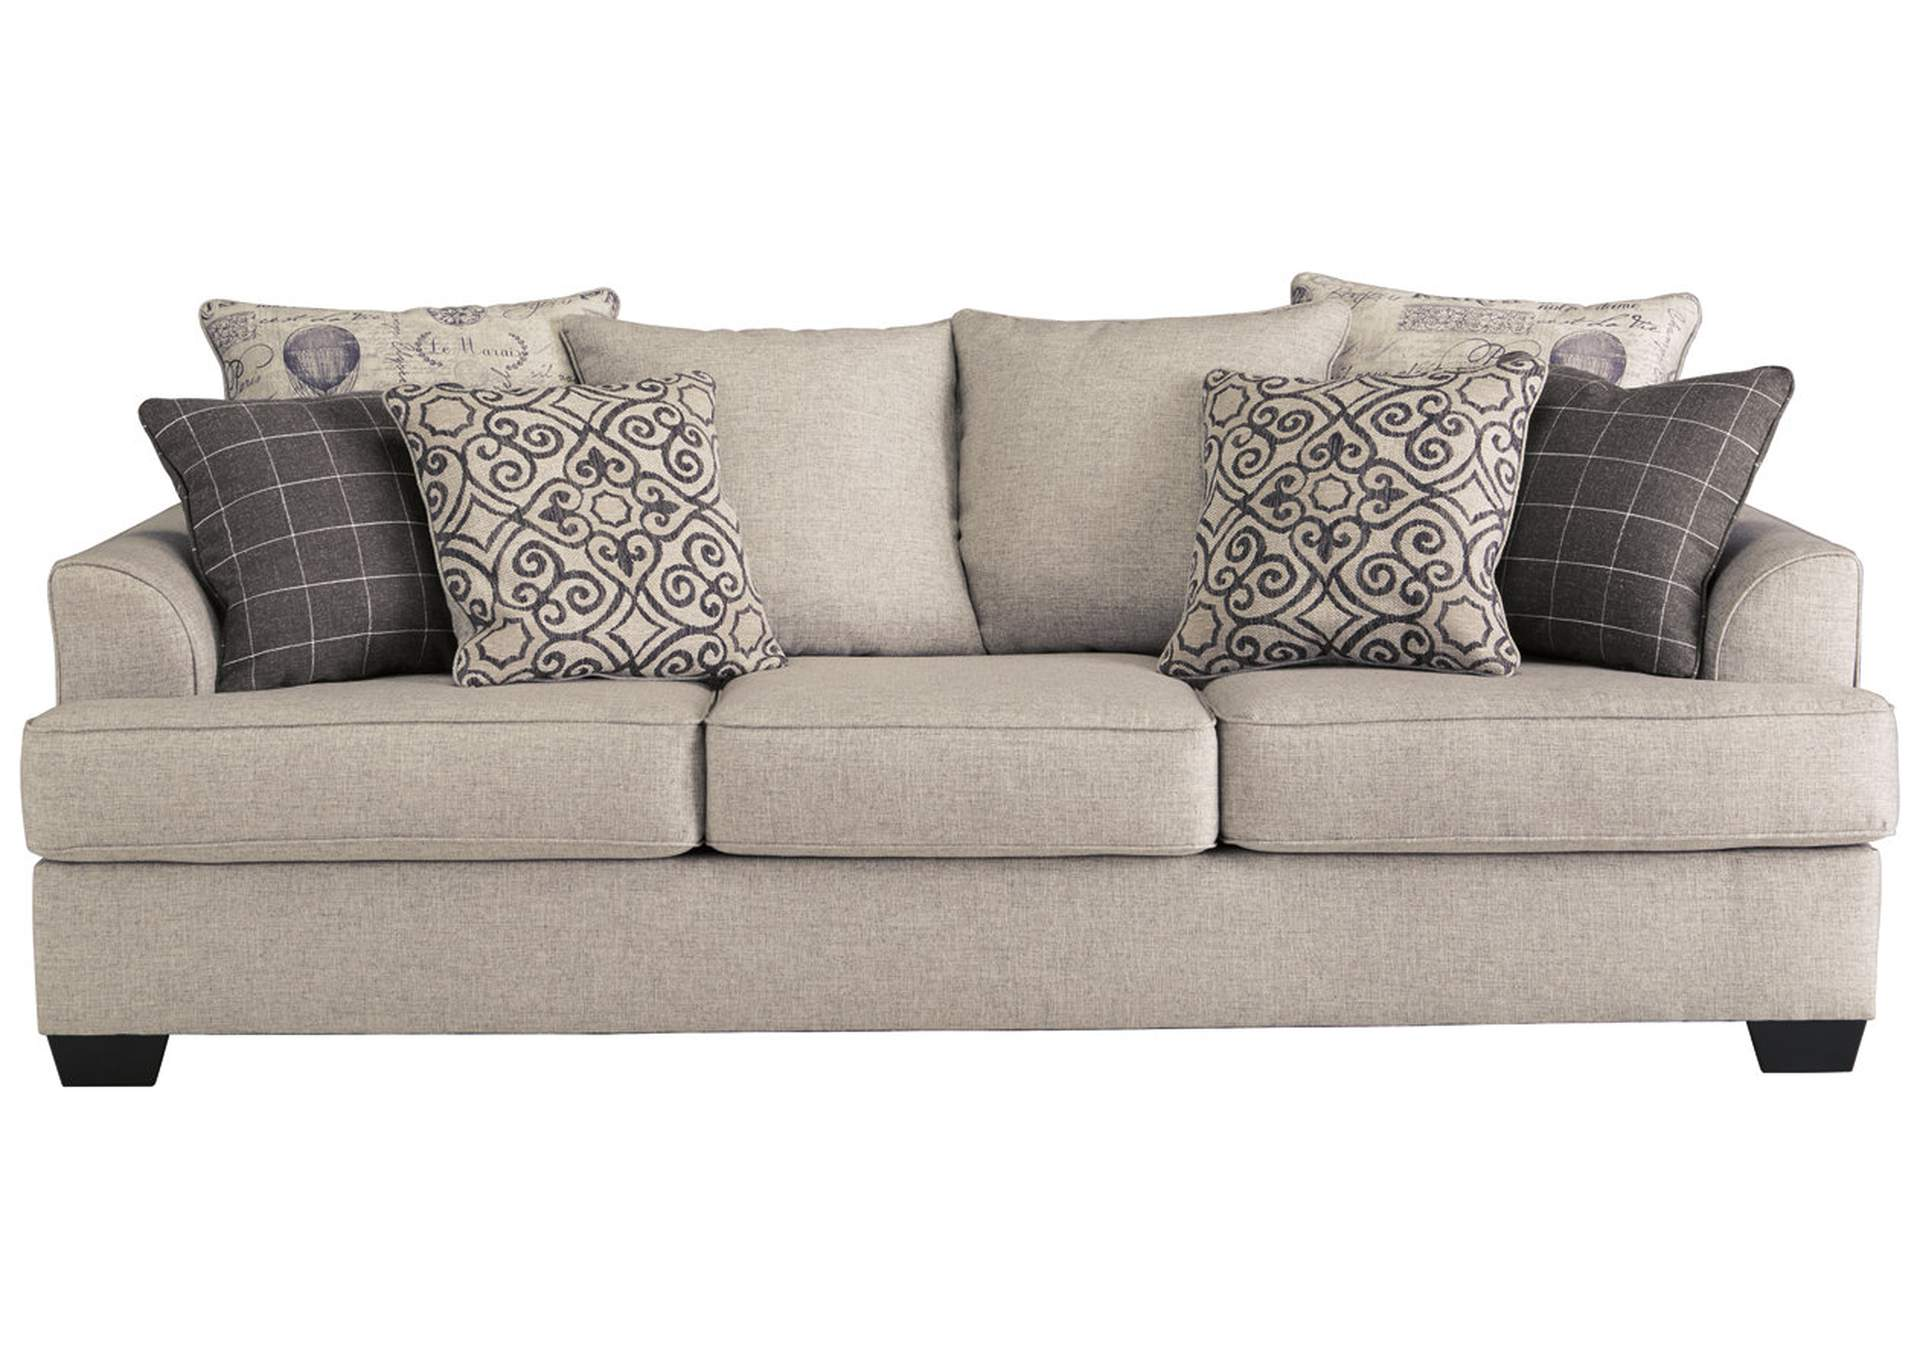 Velletri Pewter Queen Sofa Sleeper,Signature Design By Ashley